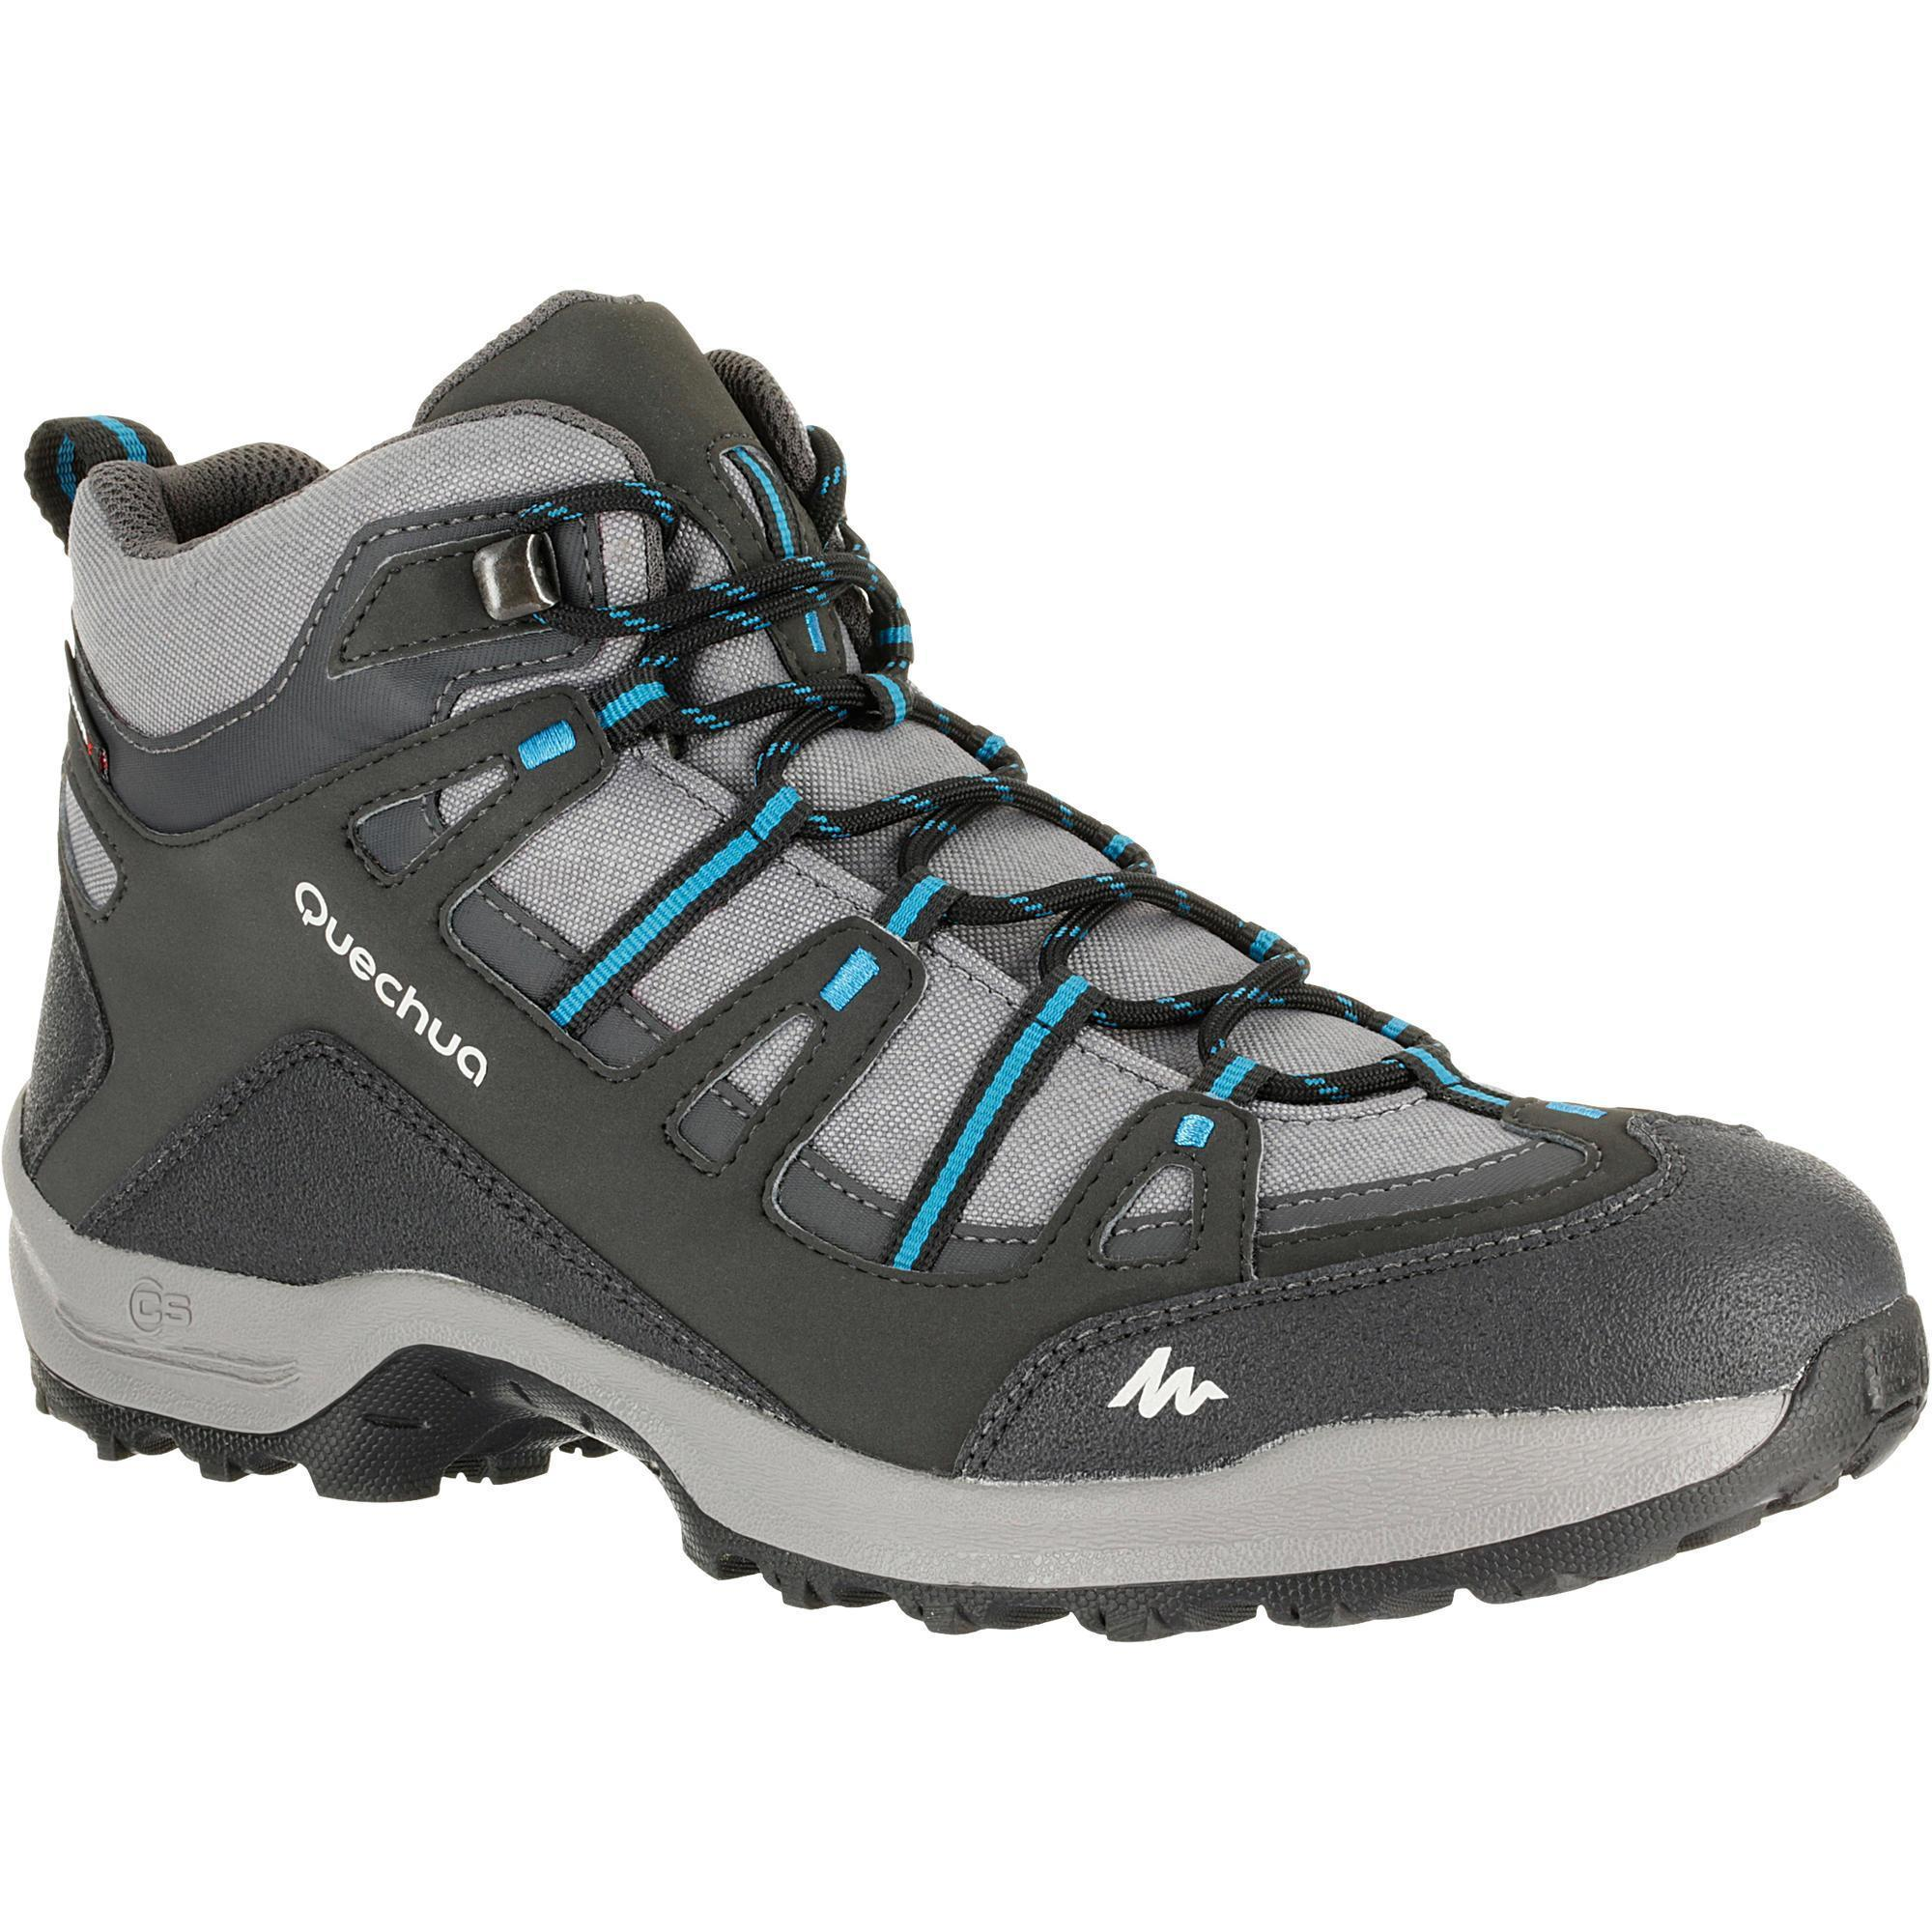 Quechua Arpenaz 100 Mid Waterproof Men S Hiking Boots